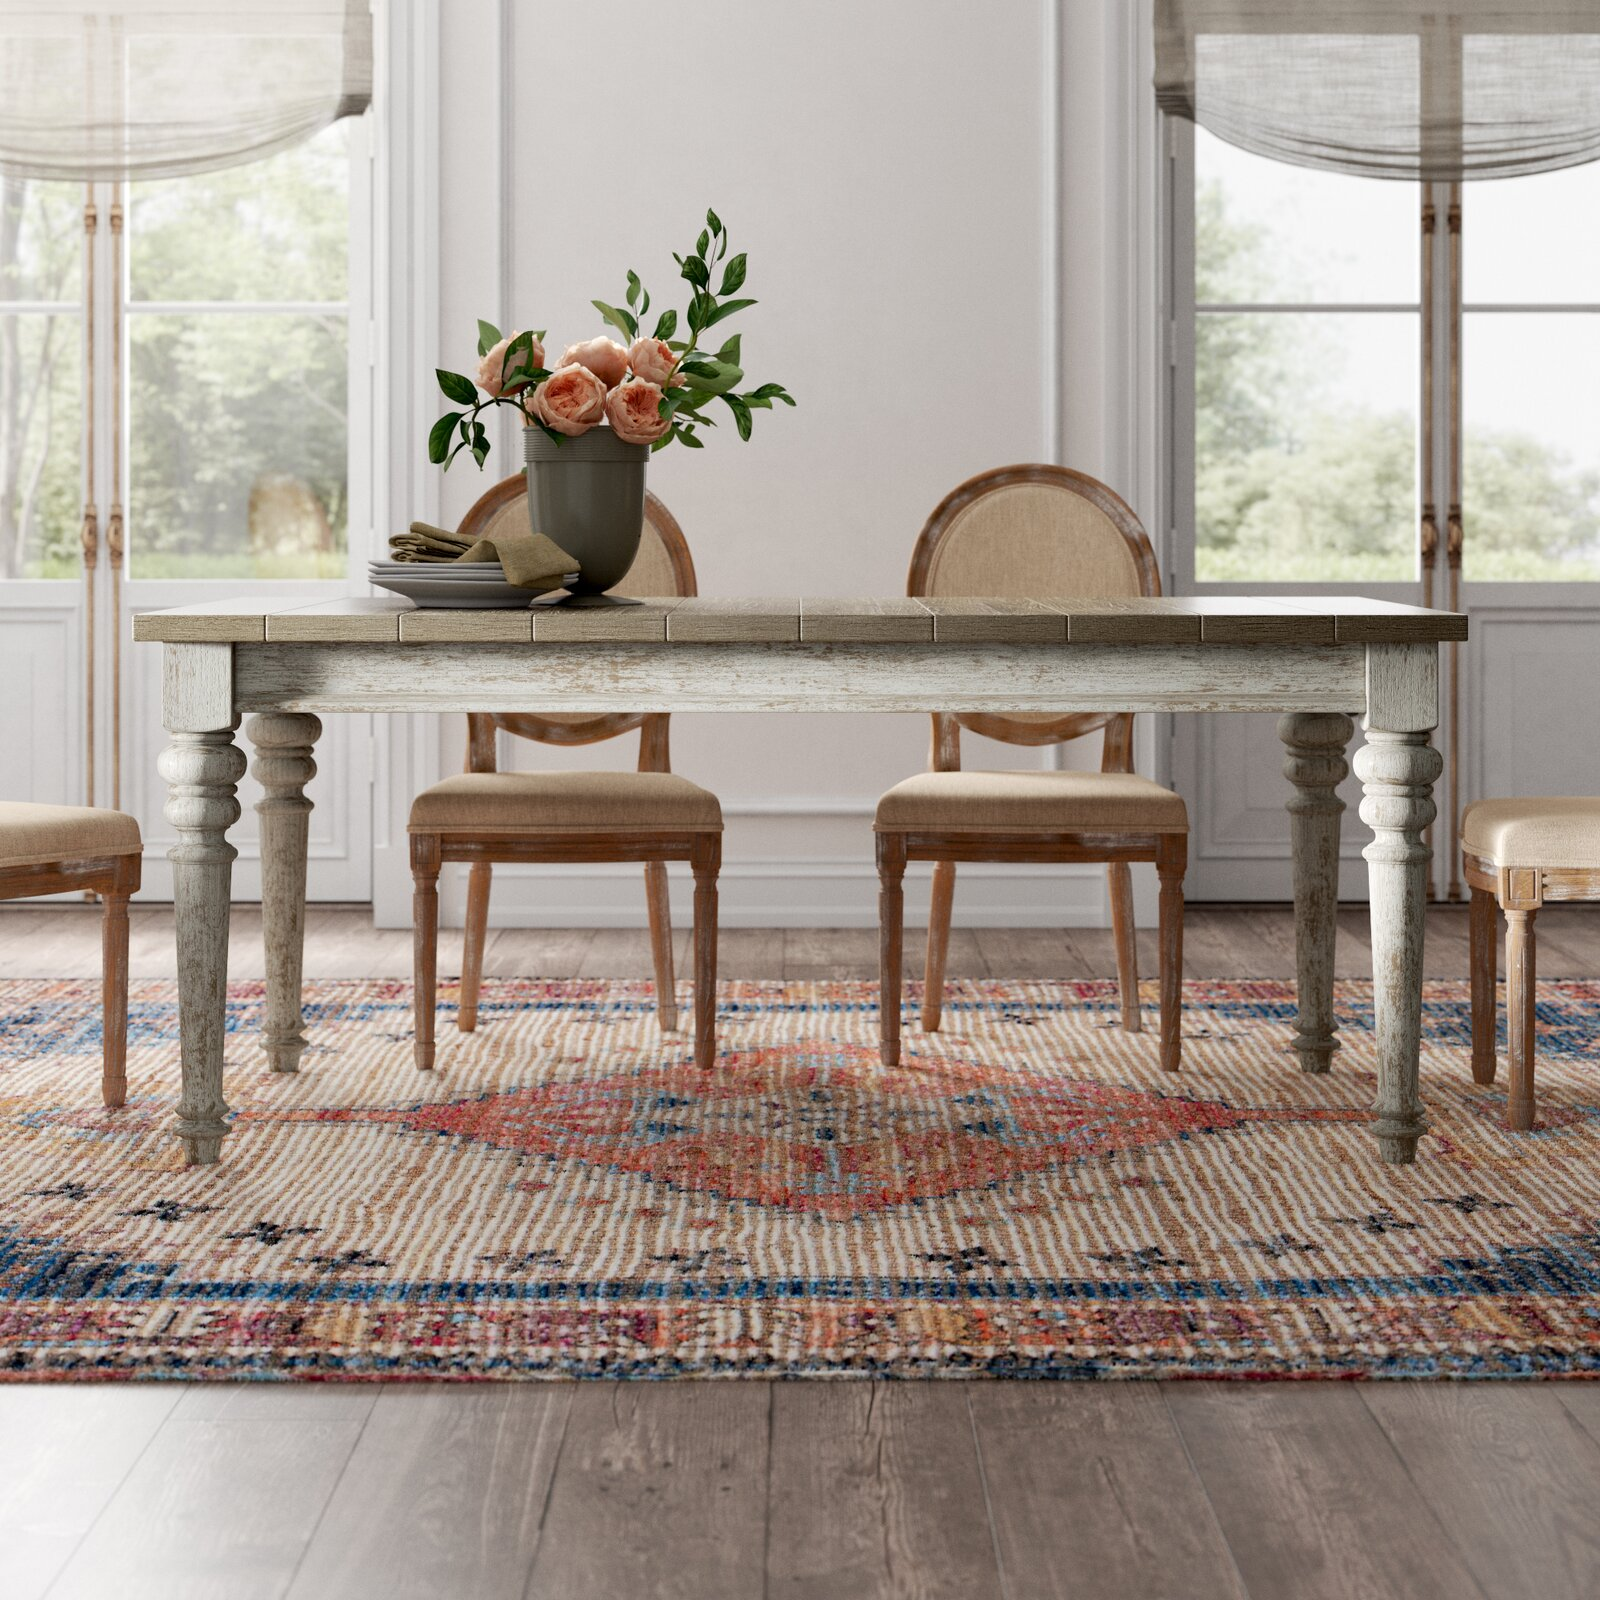 farmhouse-style-dining-table-distressed-white-base-plank-light-wood-top-72-inch-tabletop-seats-eight-classic-rustic-furniture-for-sale-online